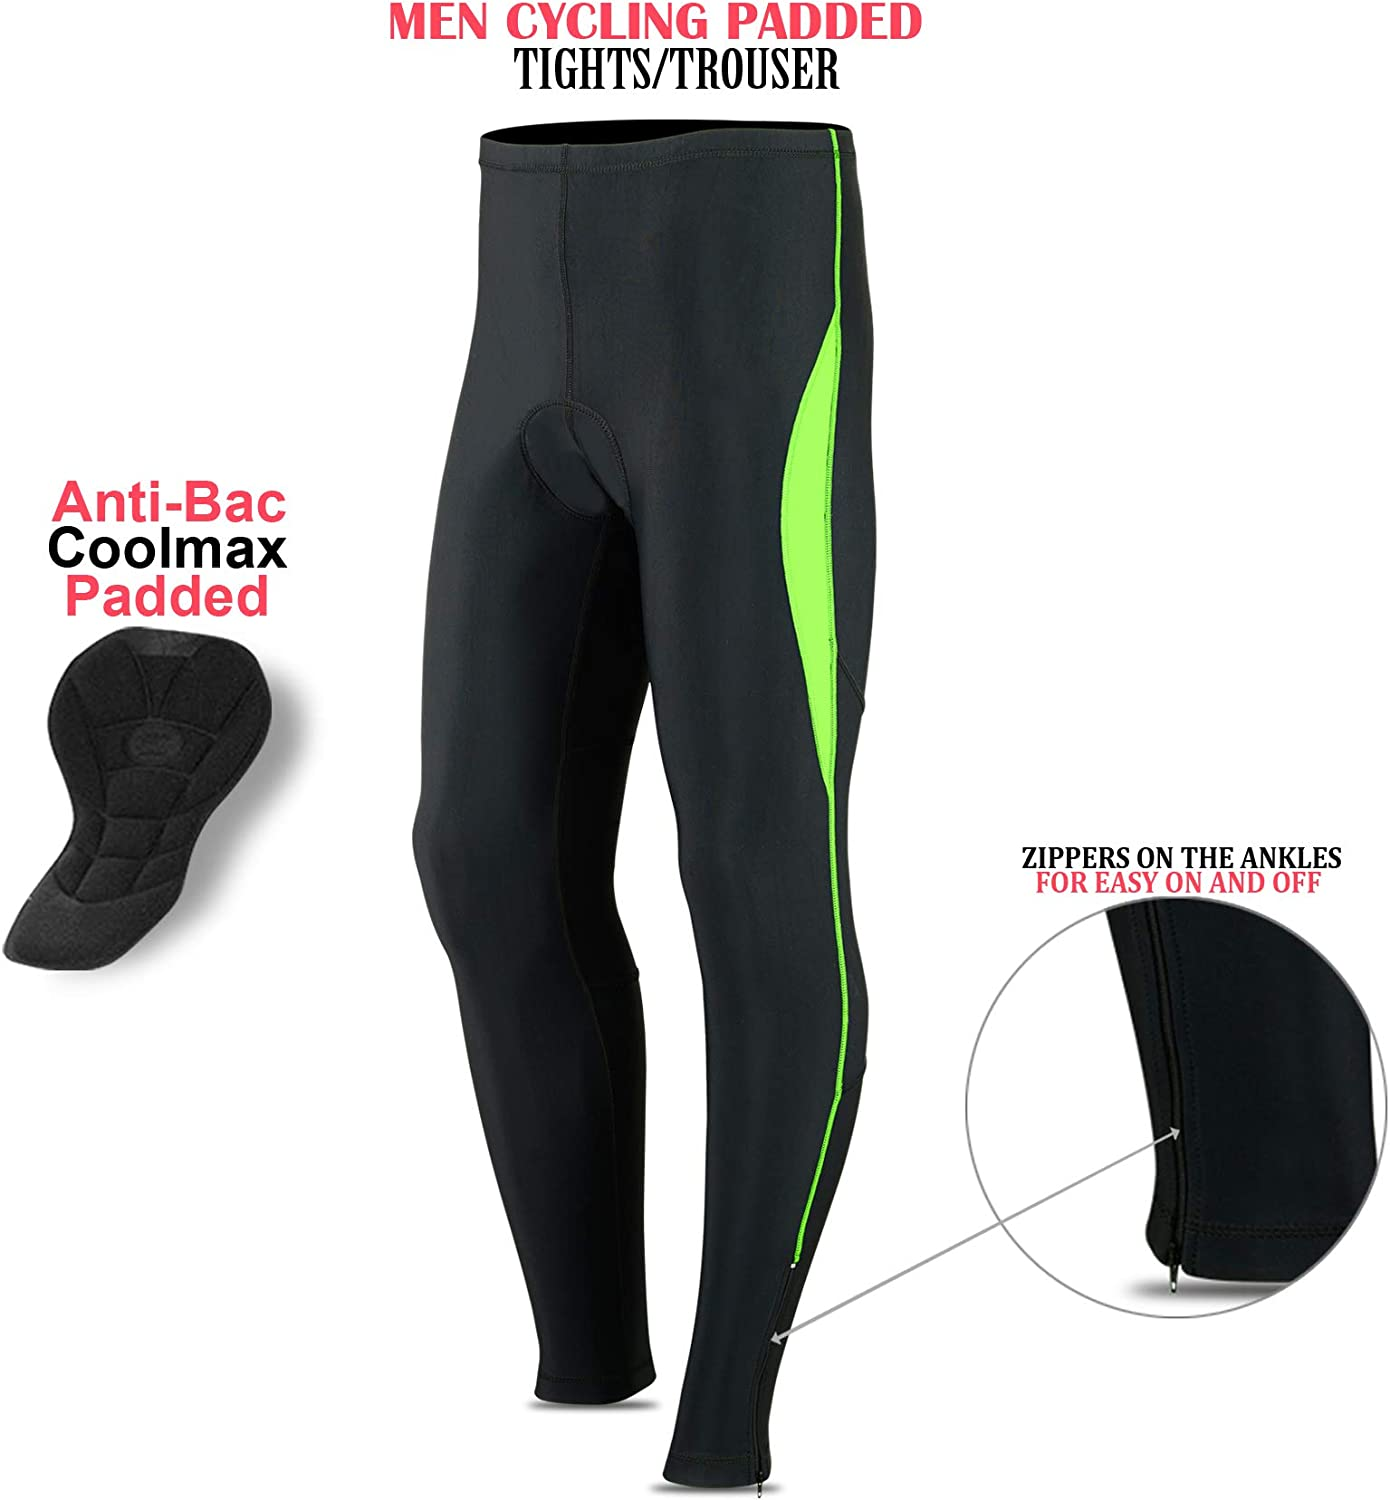 ROXX Men Cycling Tights Trousers Coolmax Padded Bicycle Long Pant Compression